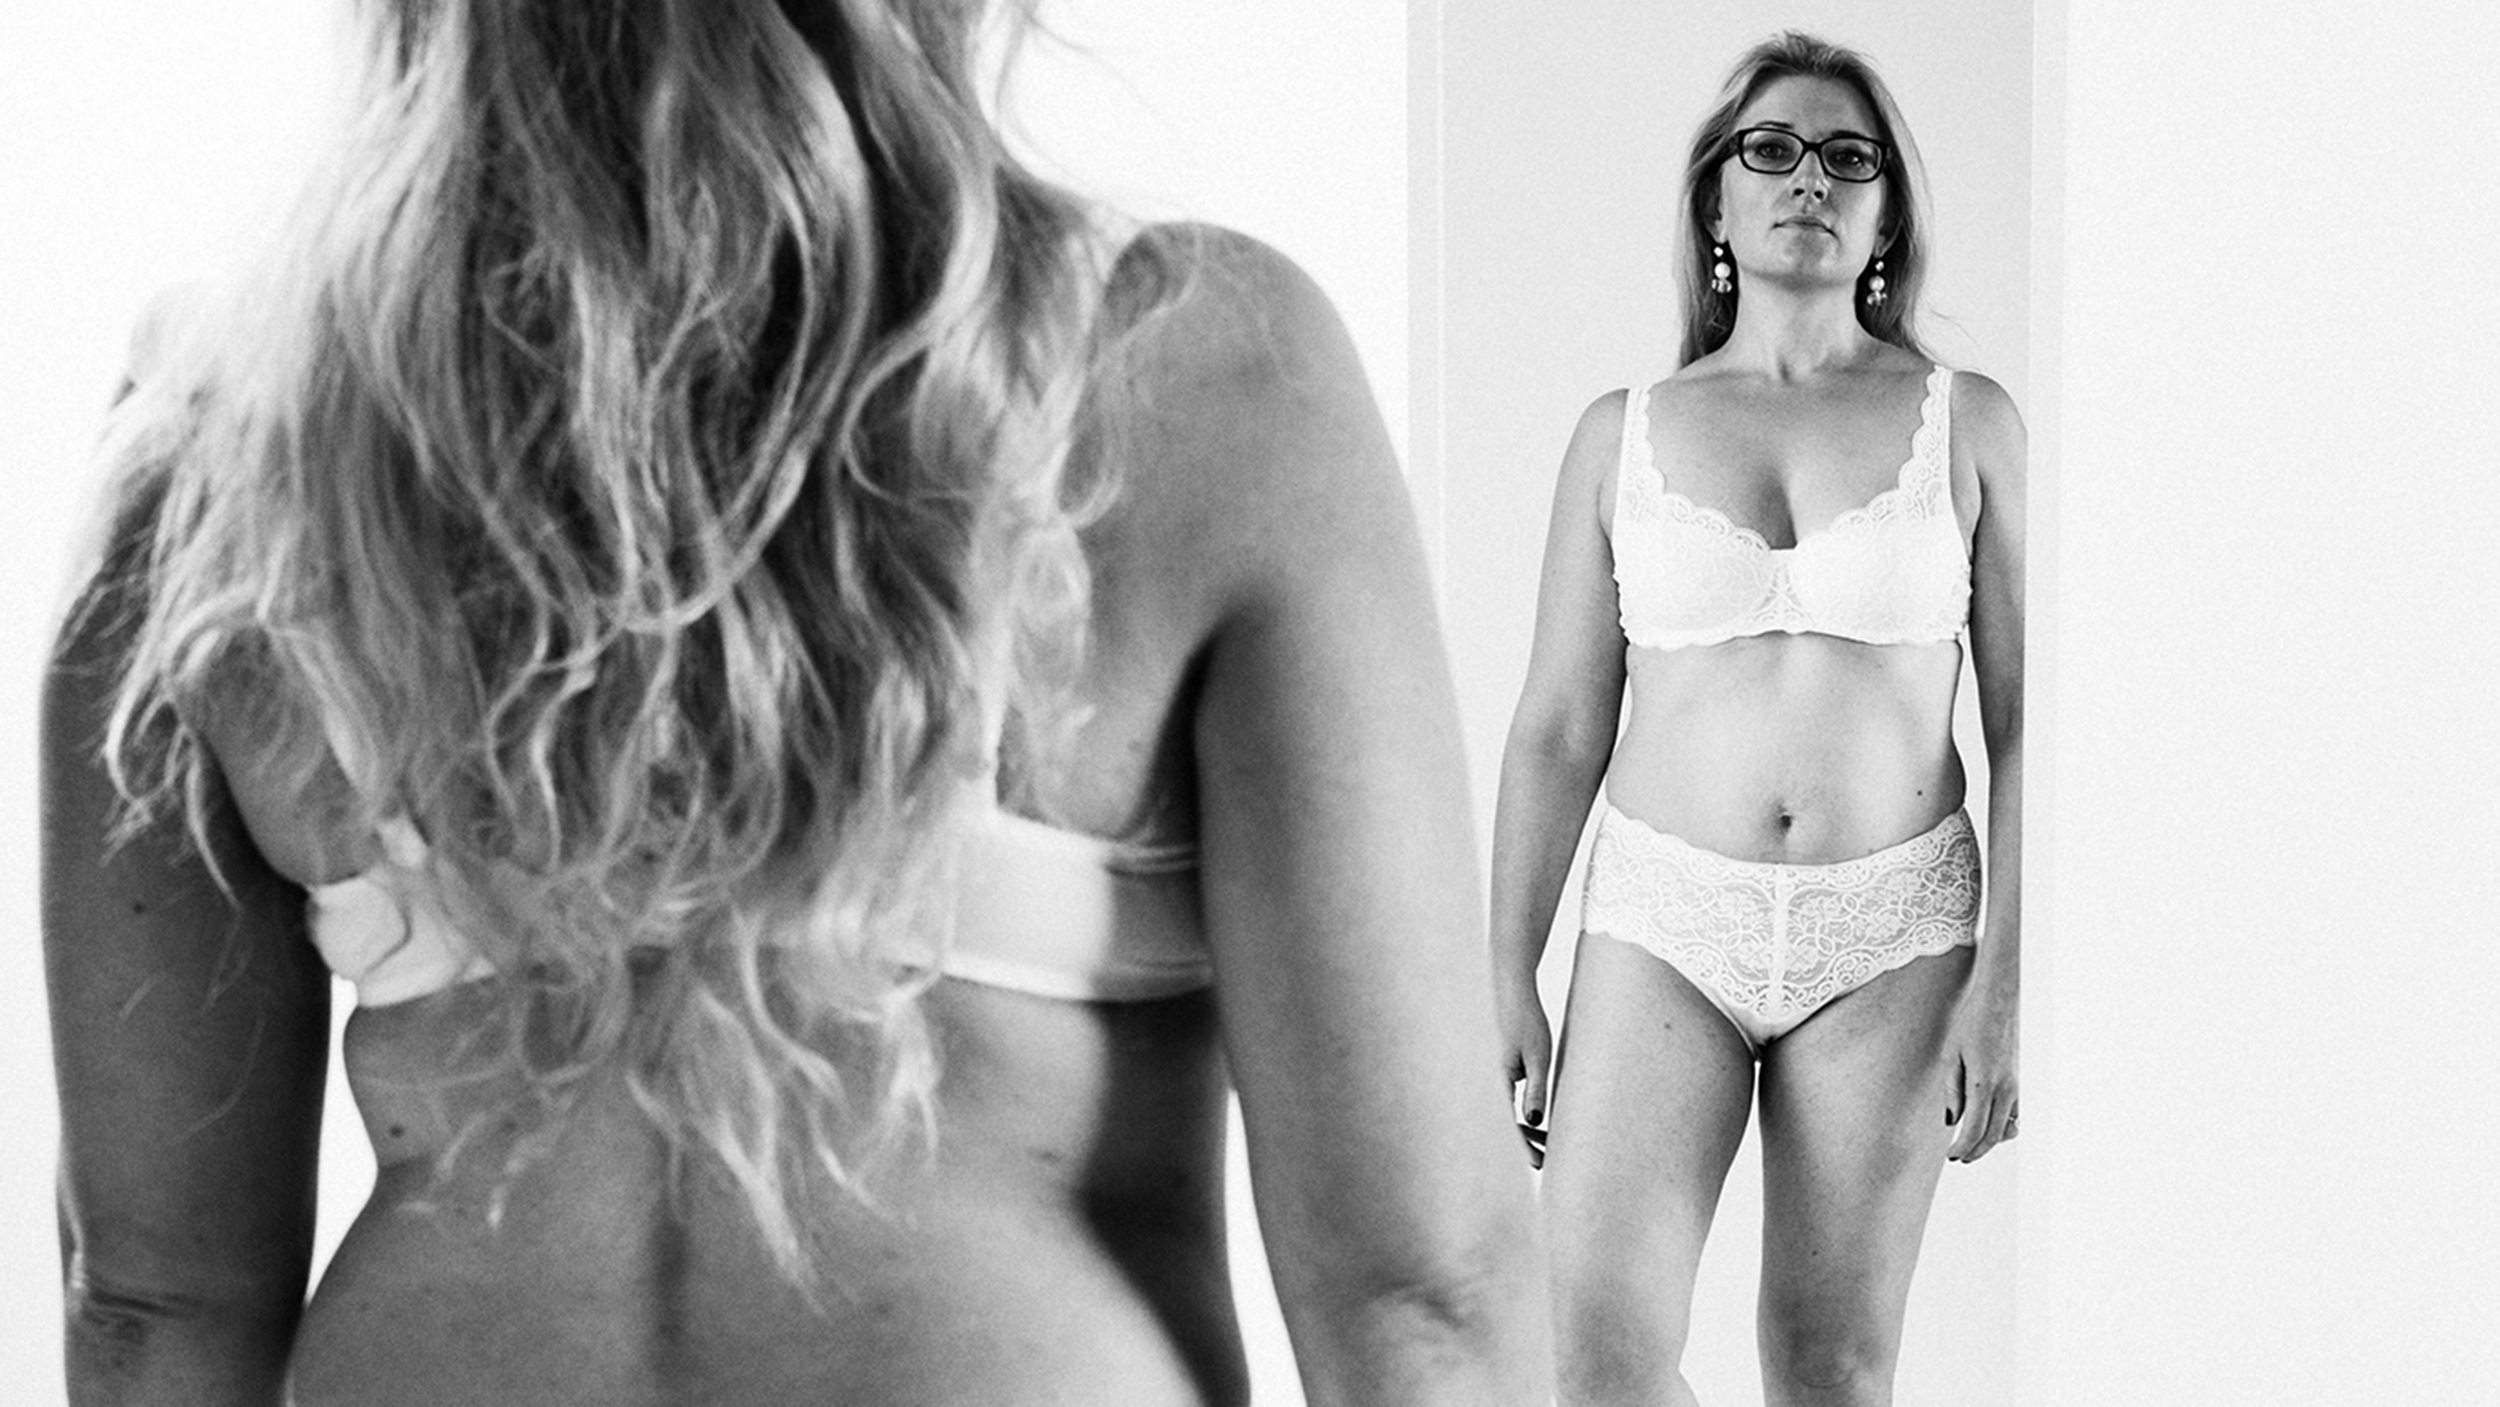 What Is A Perfect Woman Photo Project Explores Body Image